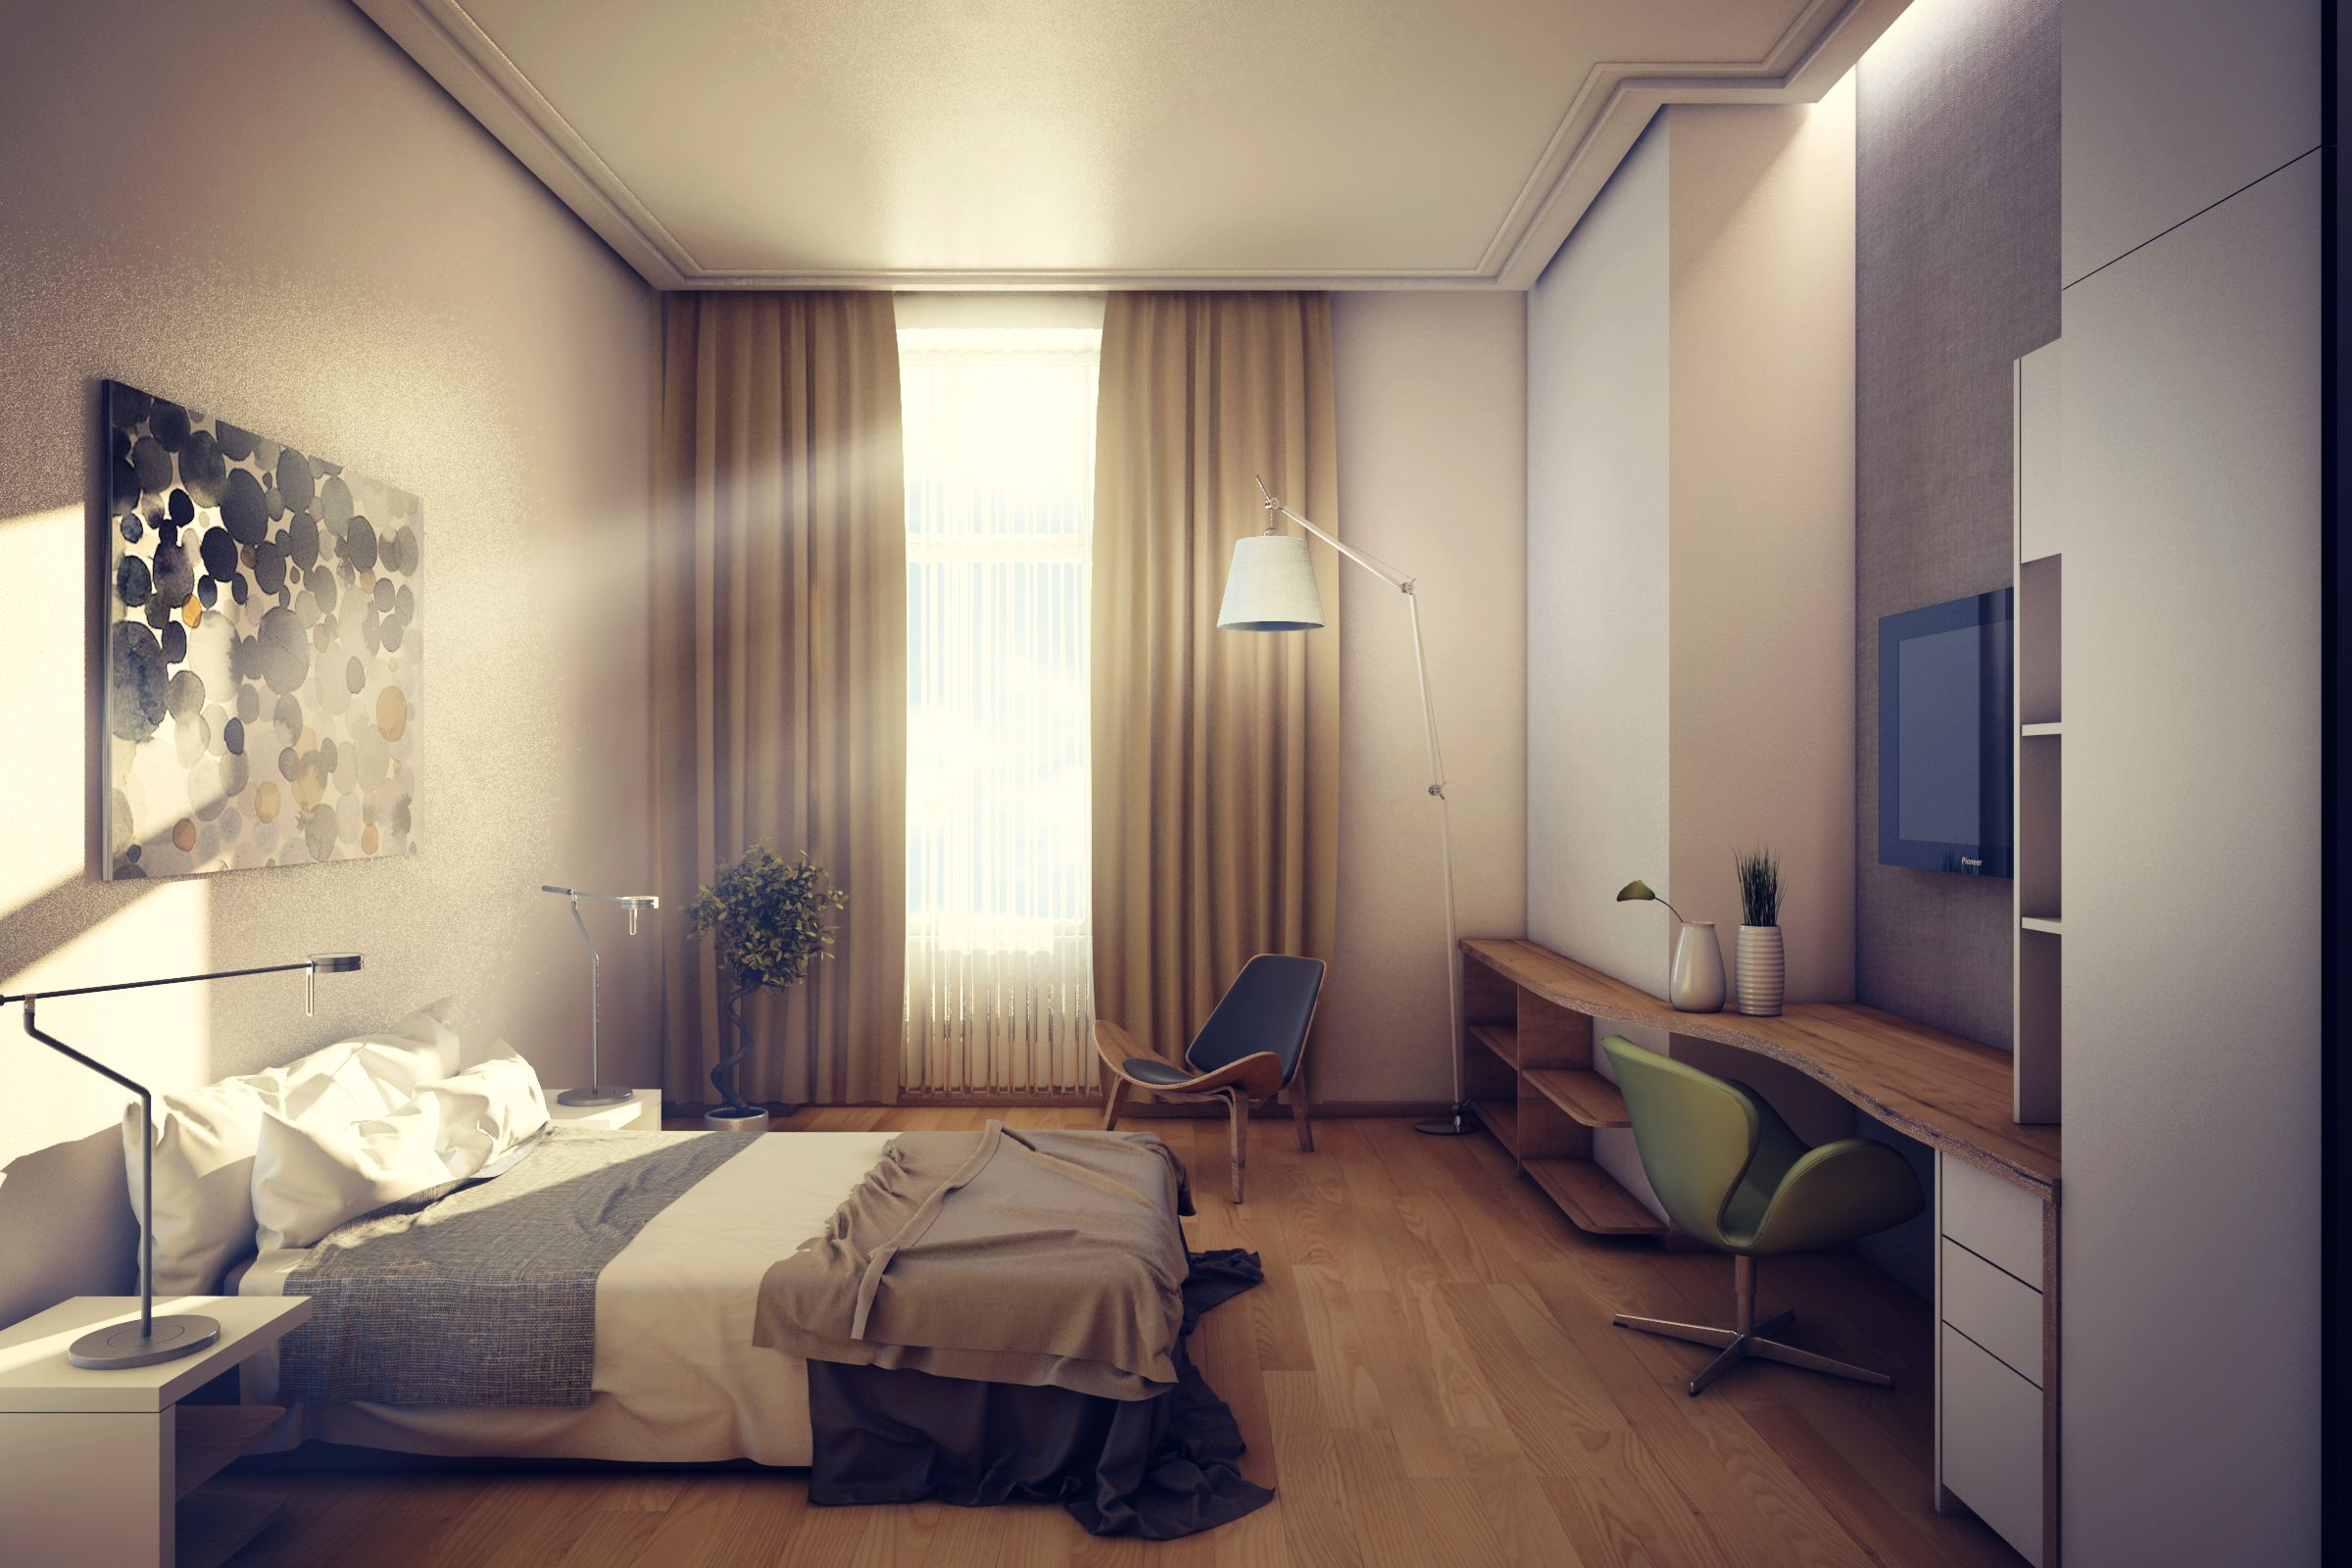 Hotel room interior design 3d modelling rendering and for Hotel room interior images